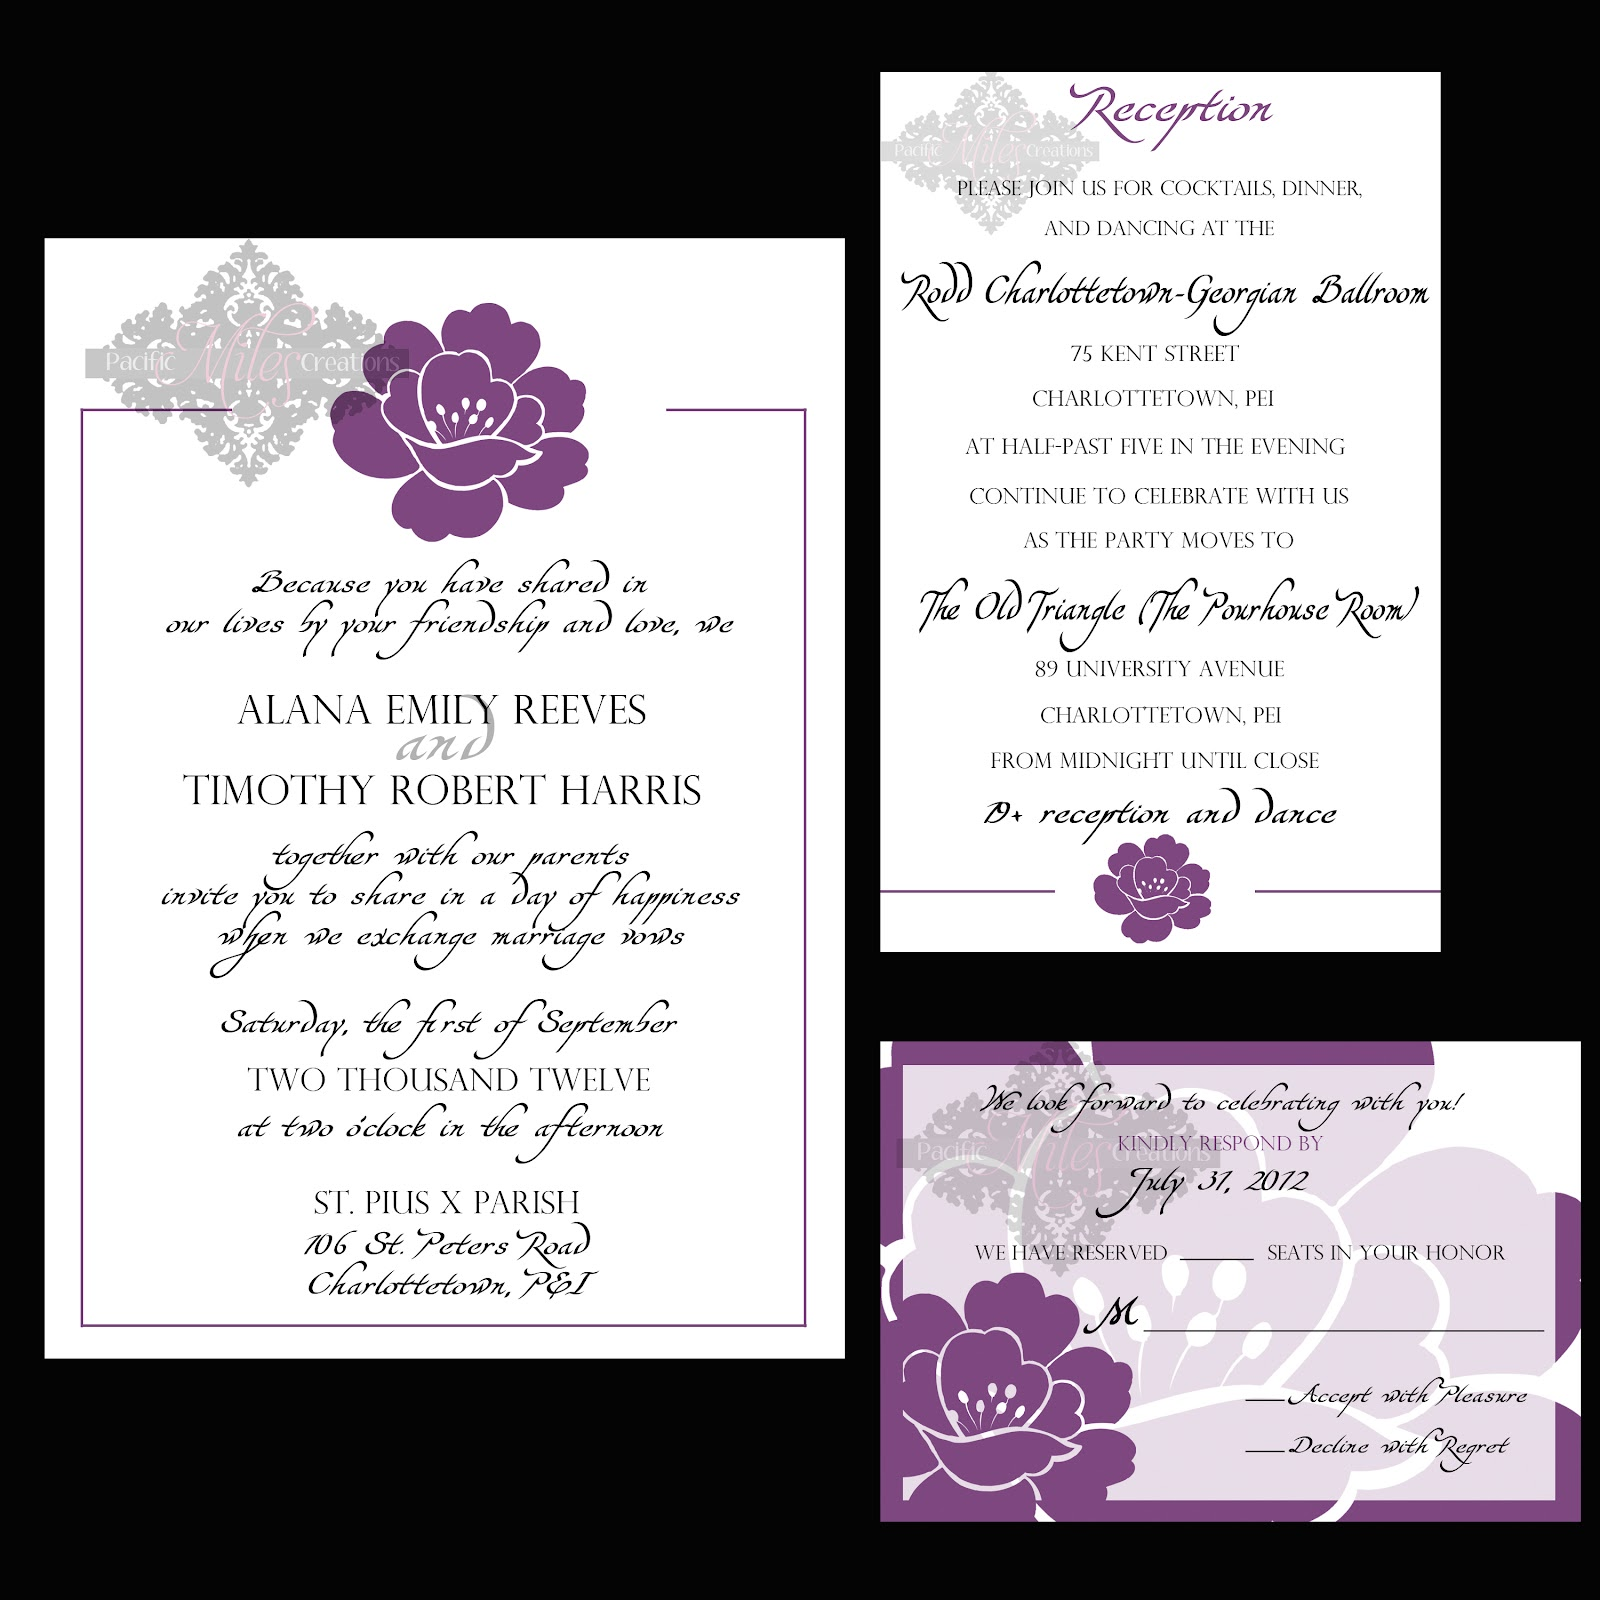 Photo+Wedding+Invitations,+Picture+Wedding+Invitations+42.jpg